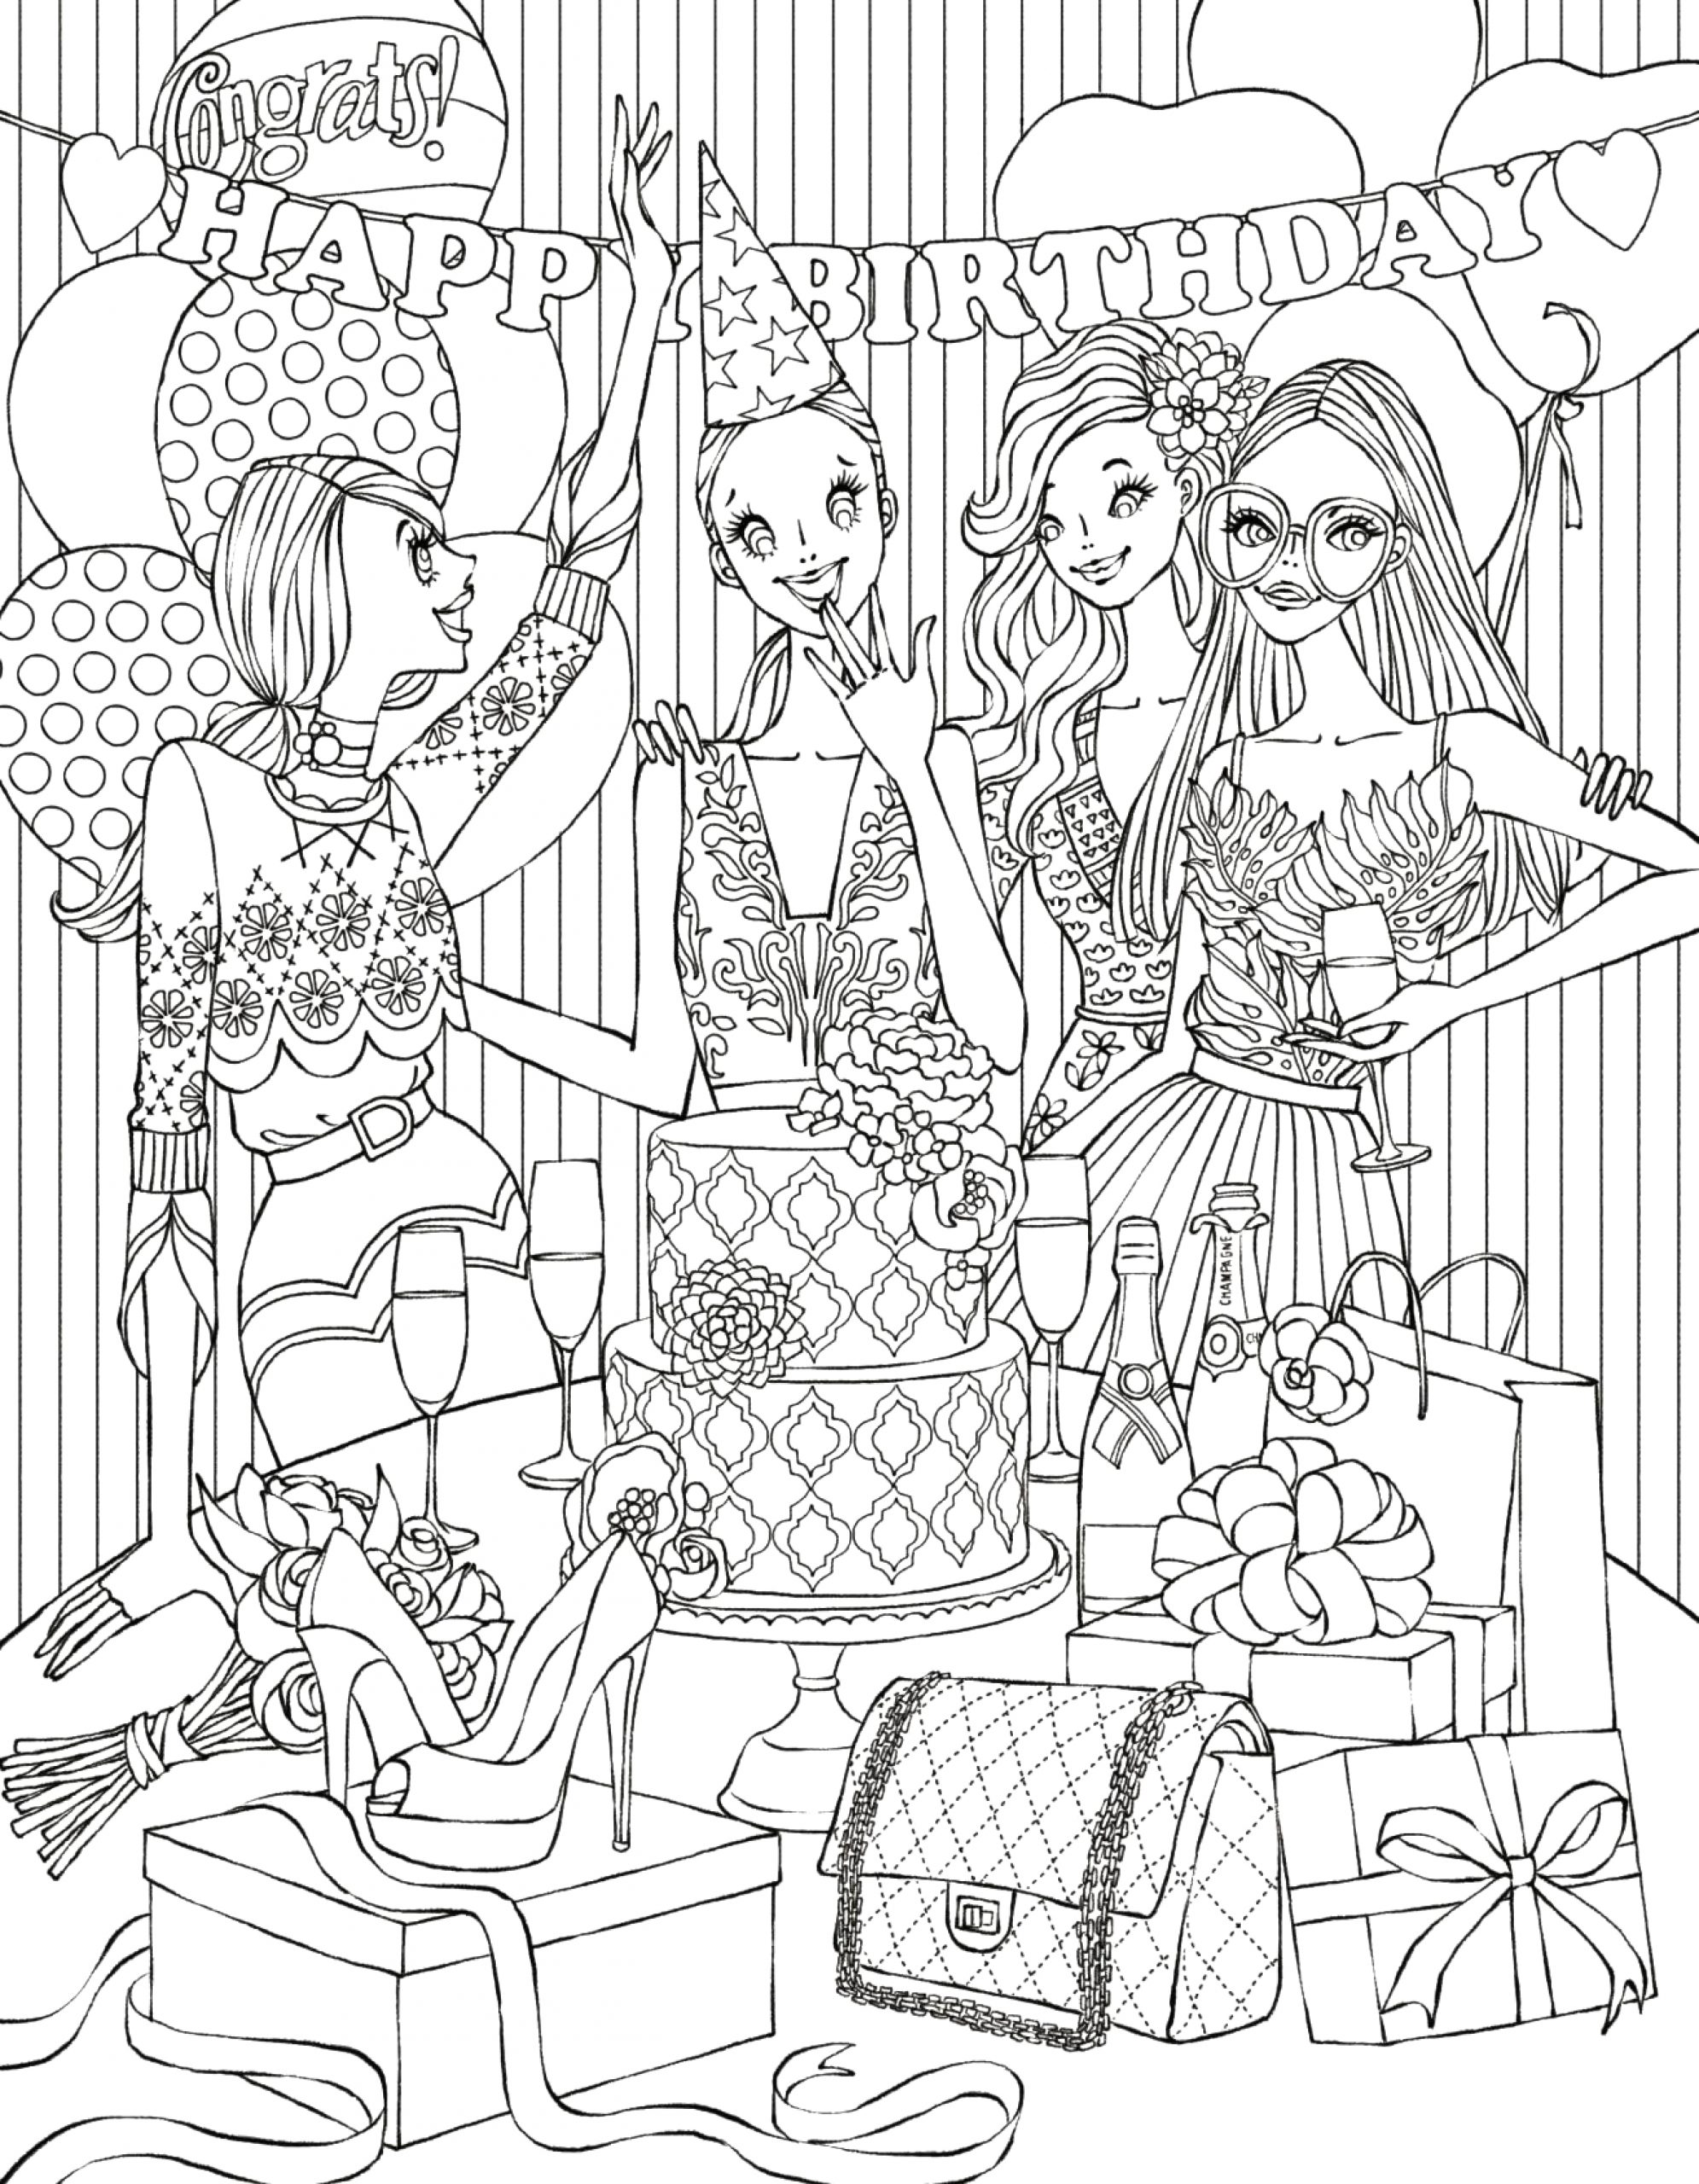 Turn Pictures Into Coloring Pages Free Online Turn S Into Coloring Pages App at Getcolorings